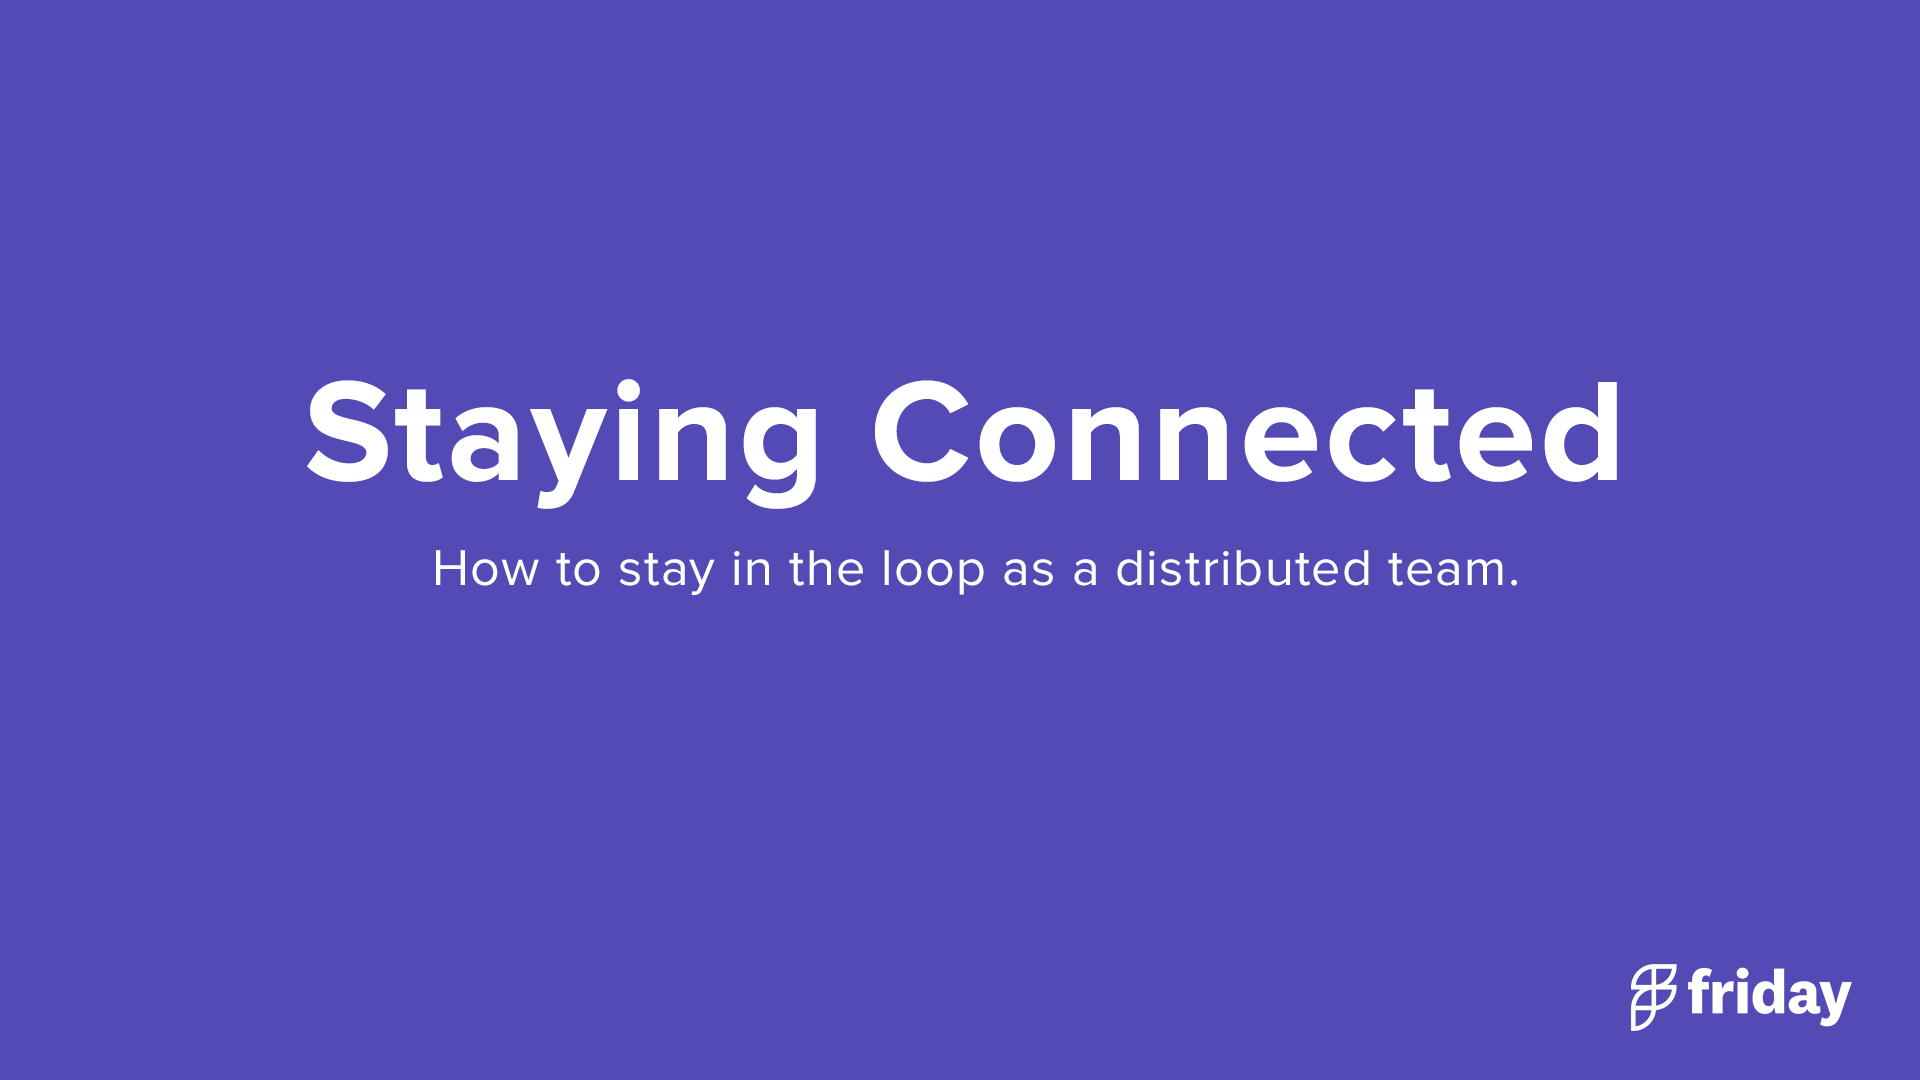 Staying Connected Distributed Team